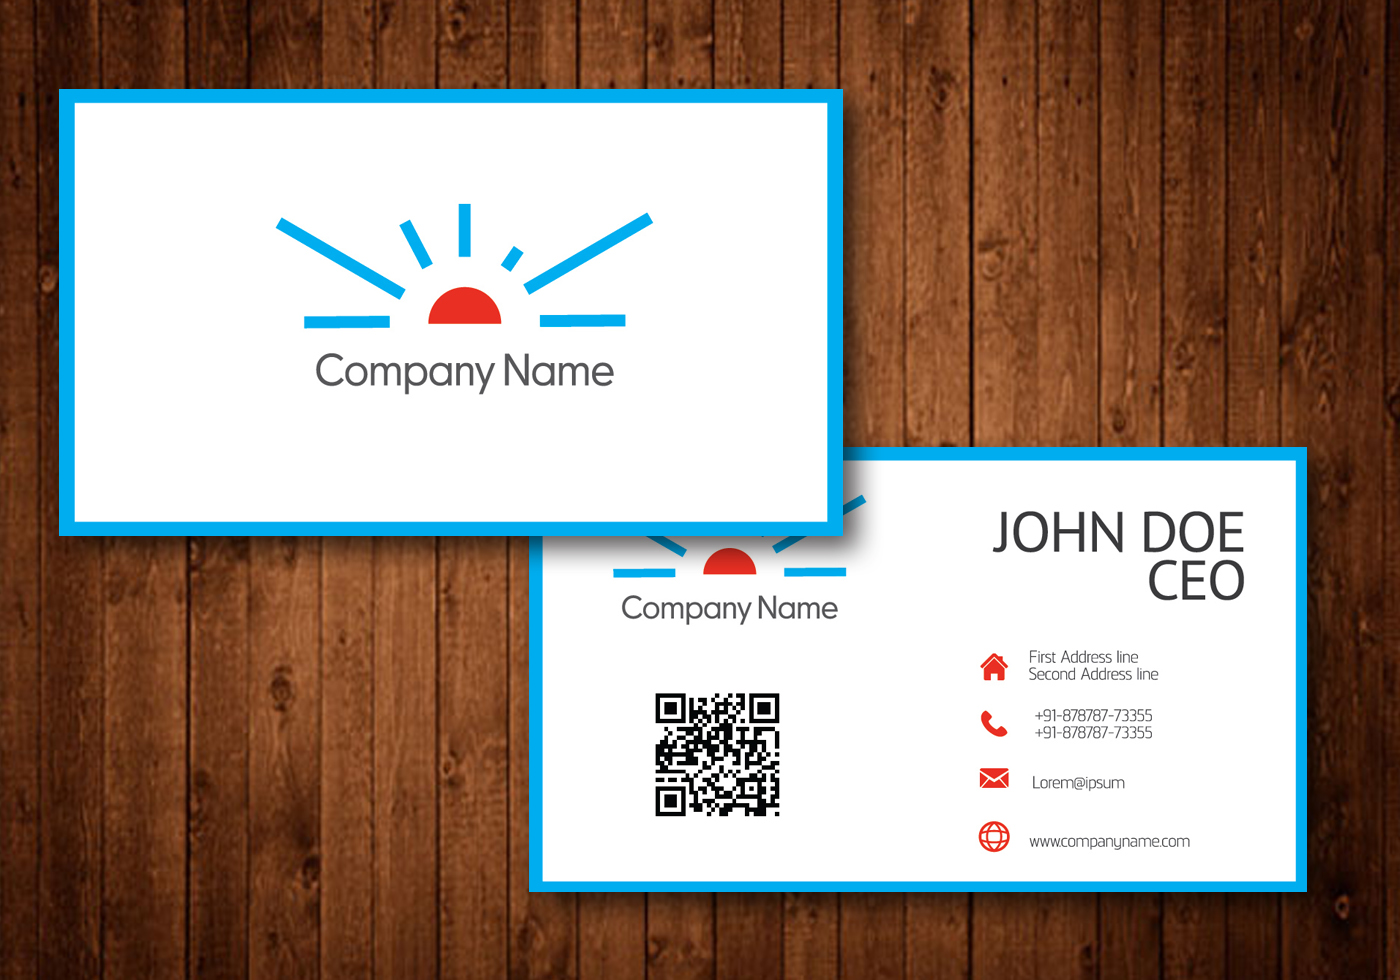 Sun logo business card template vector download free vector art sun logo business card template vector download free vector art stock graphics images reheart Image collections